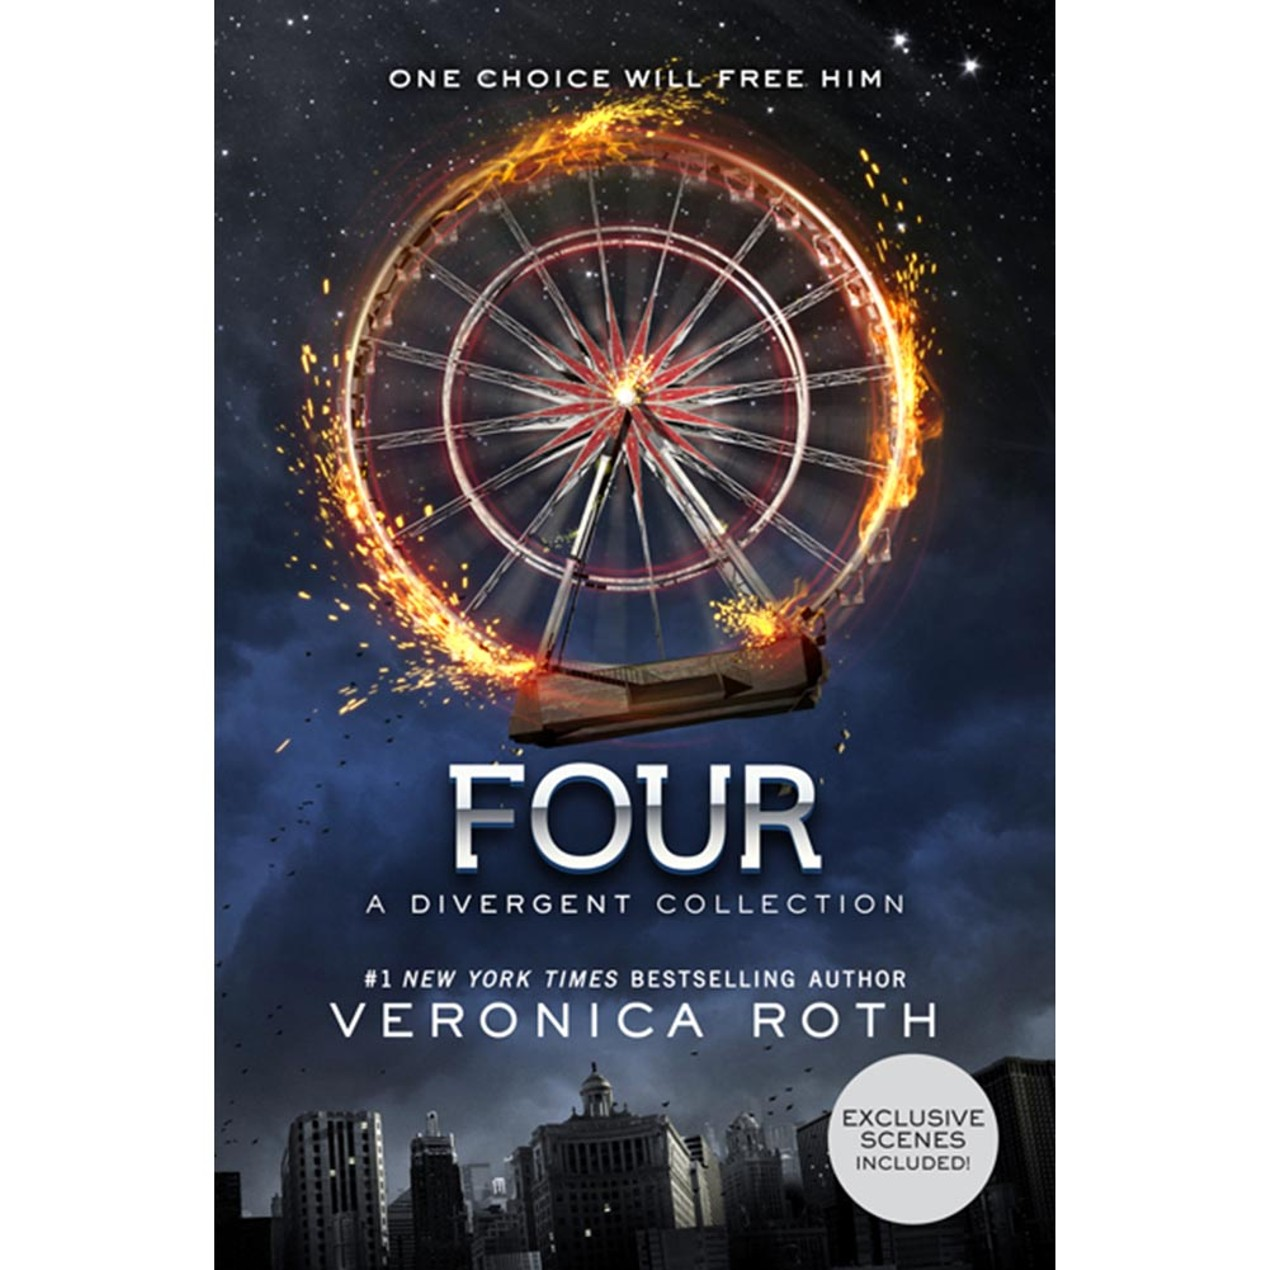 Four a Divergent Collection Book, Sci-Fi Movies by Katherine